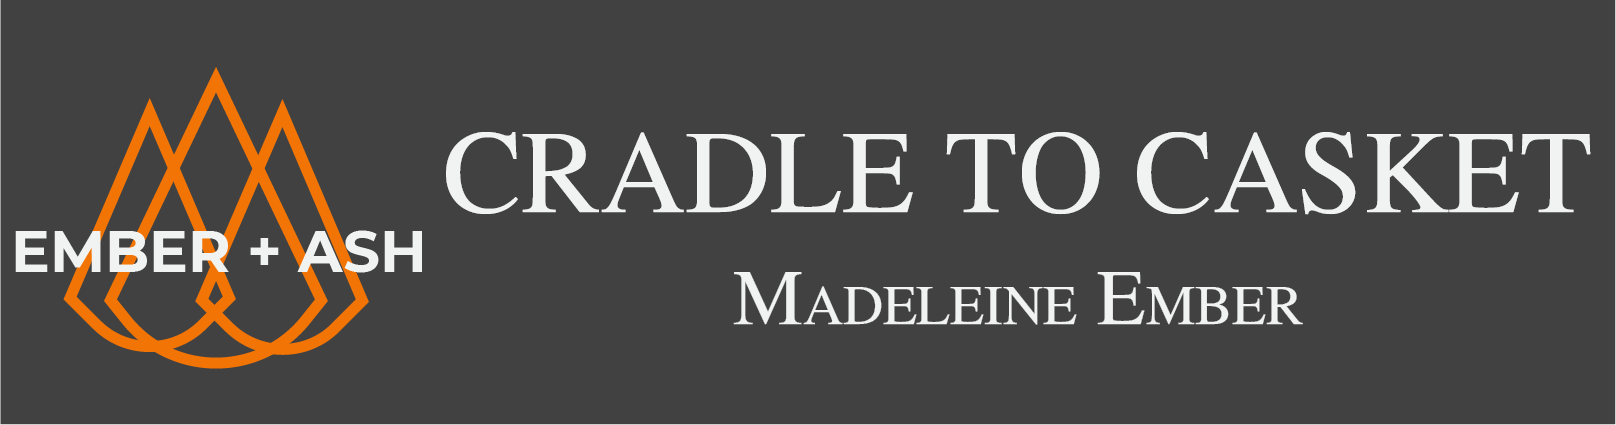 Cradle to Casket by Madeleine Ember: A Game of Mourning for Esoteric by Jay Dragon